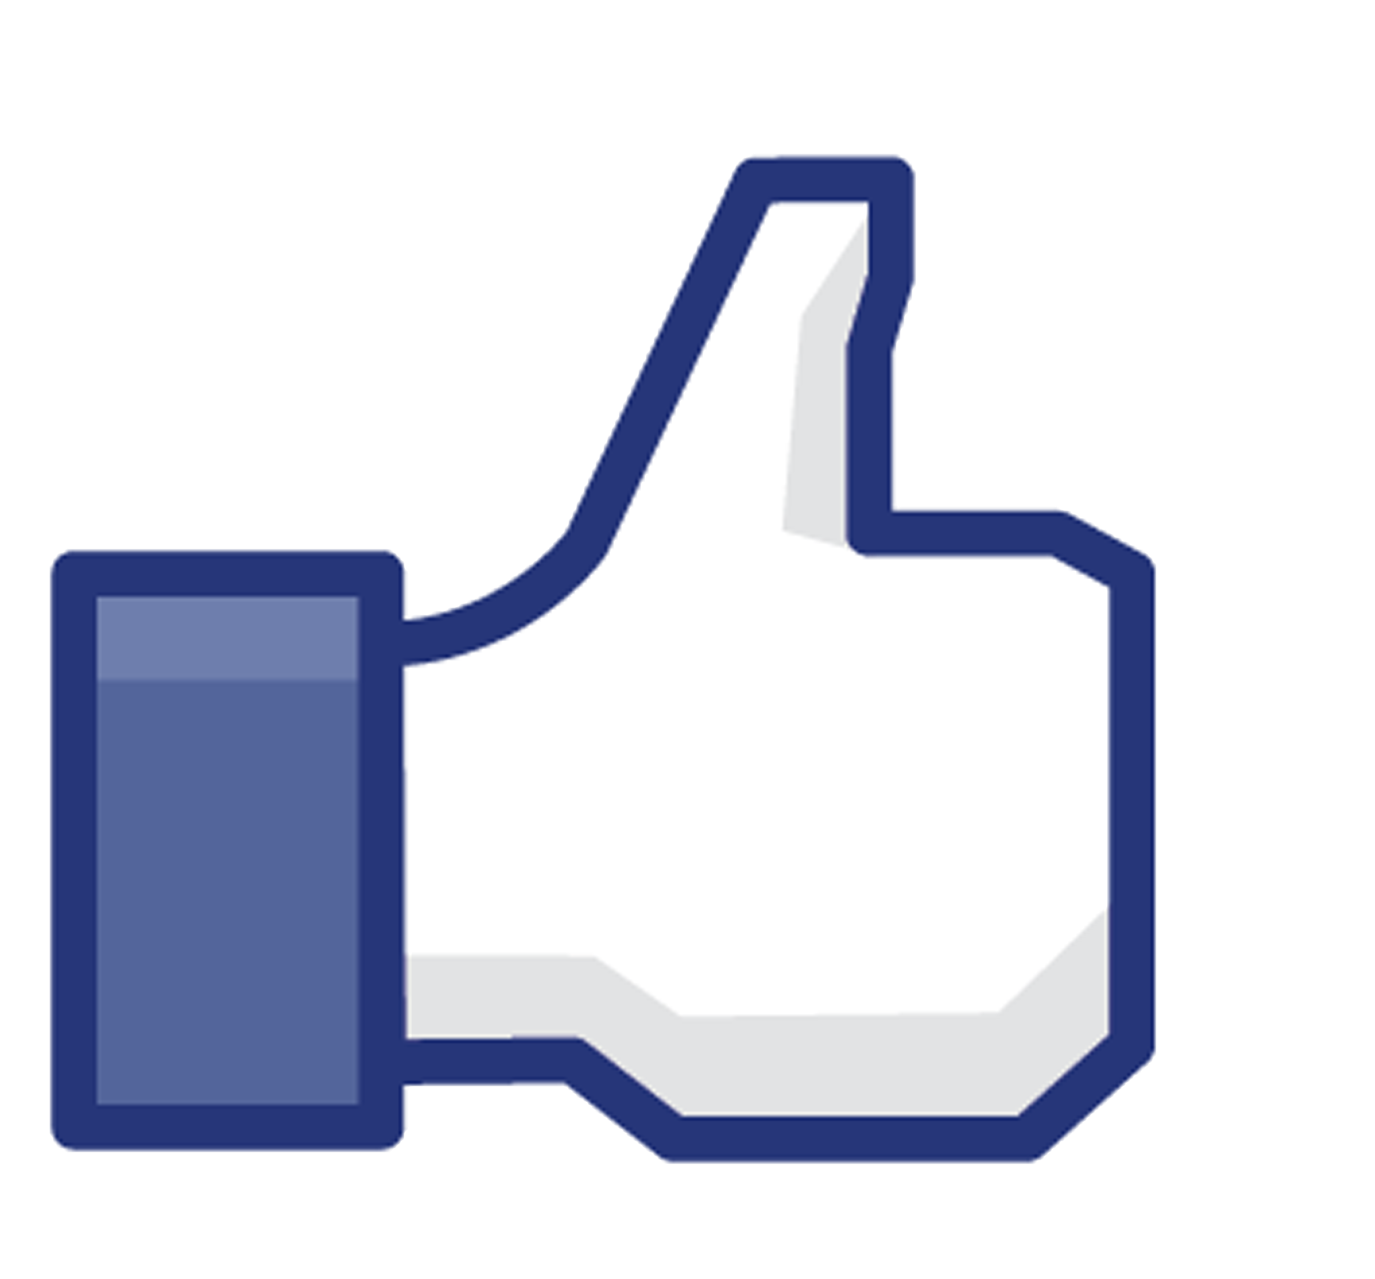 Facebook png images all. Want clipart transparent